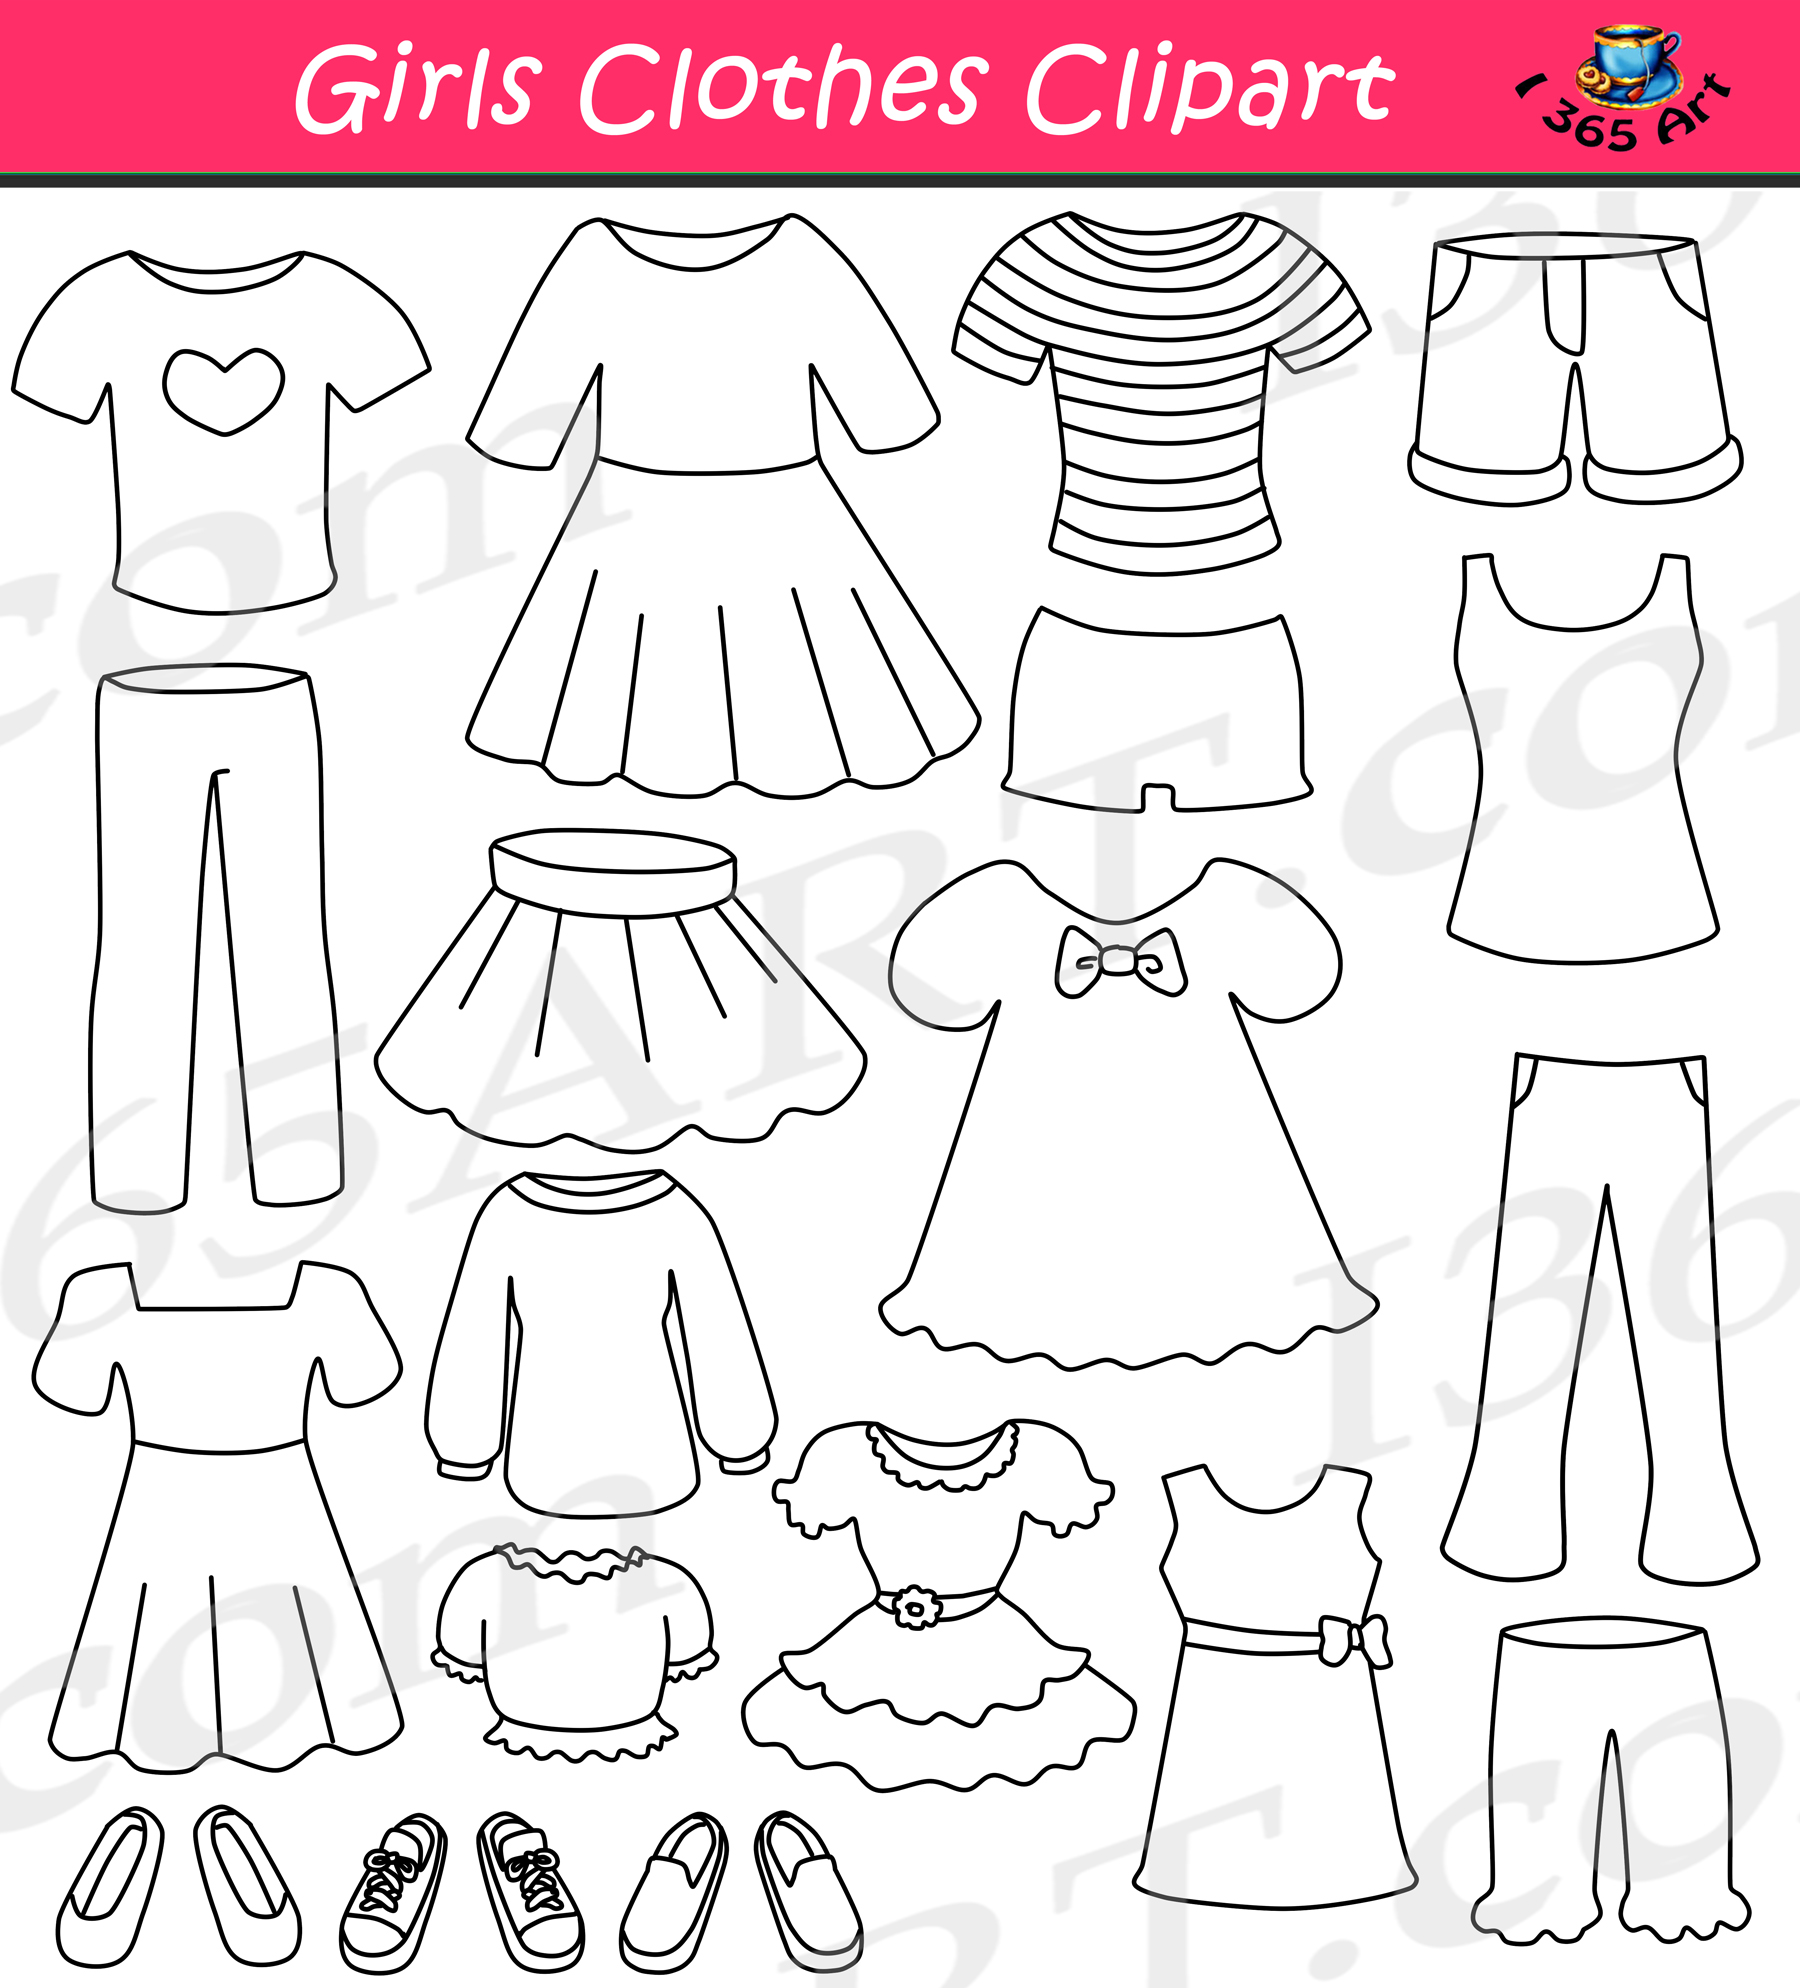 Clothing clipart used clothes. Girls set dress up